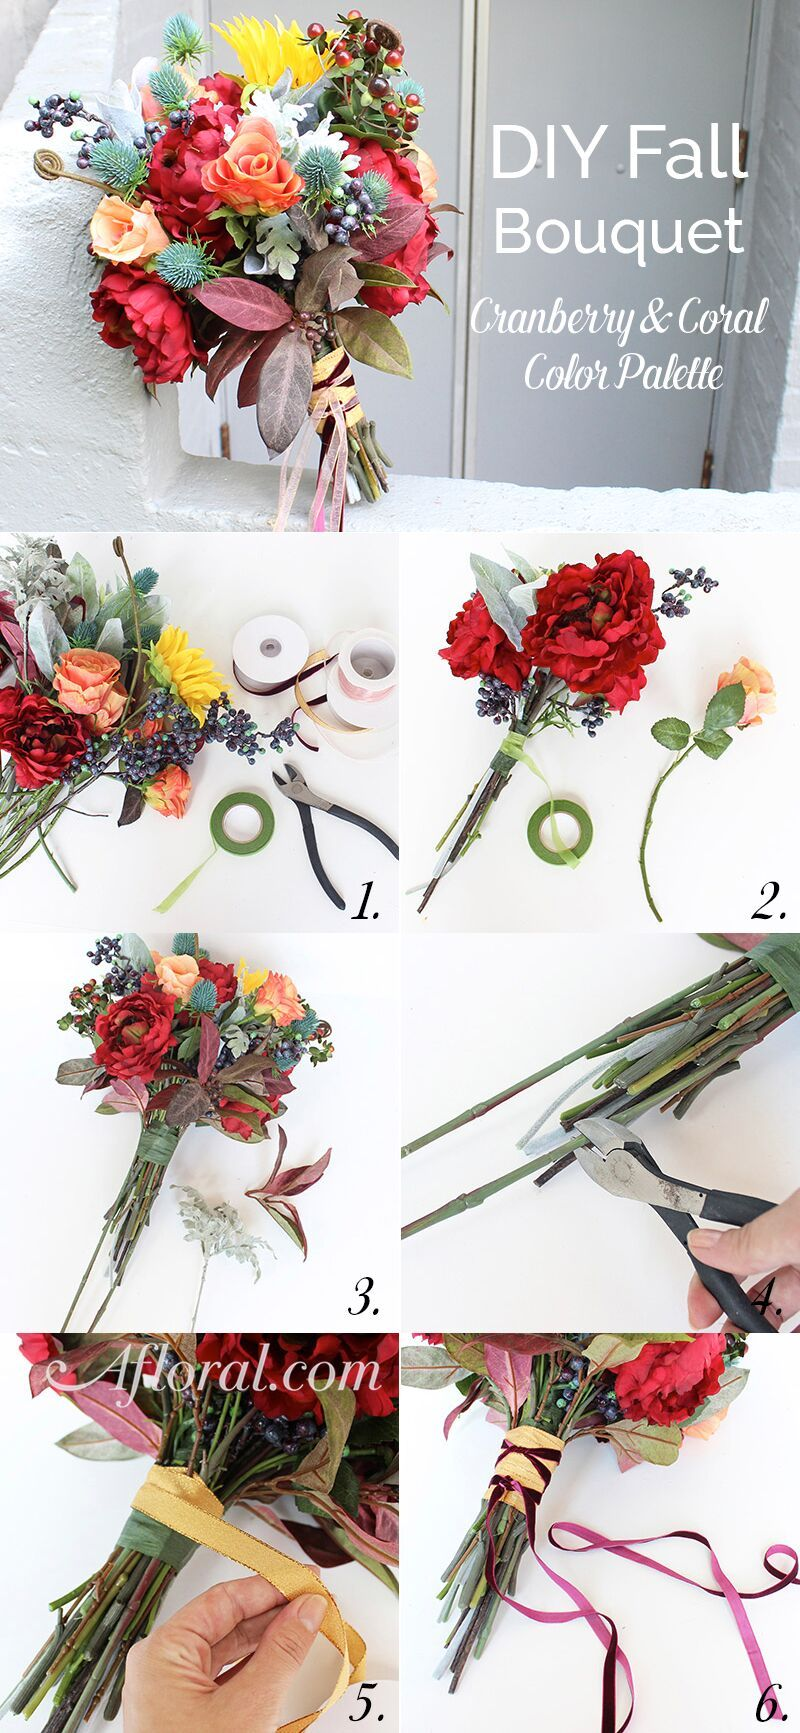 Diy fall bouquet cranberry coral pinterest silk flowers how to make a stunning diy fall wedding bouquet with silk flowers from afloral follow these simple instructions and create your own one of a kind mightylinksfo